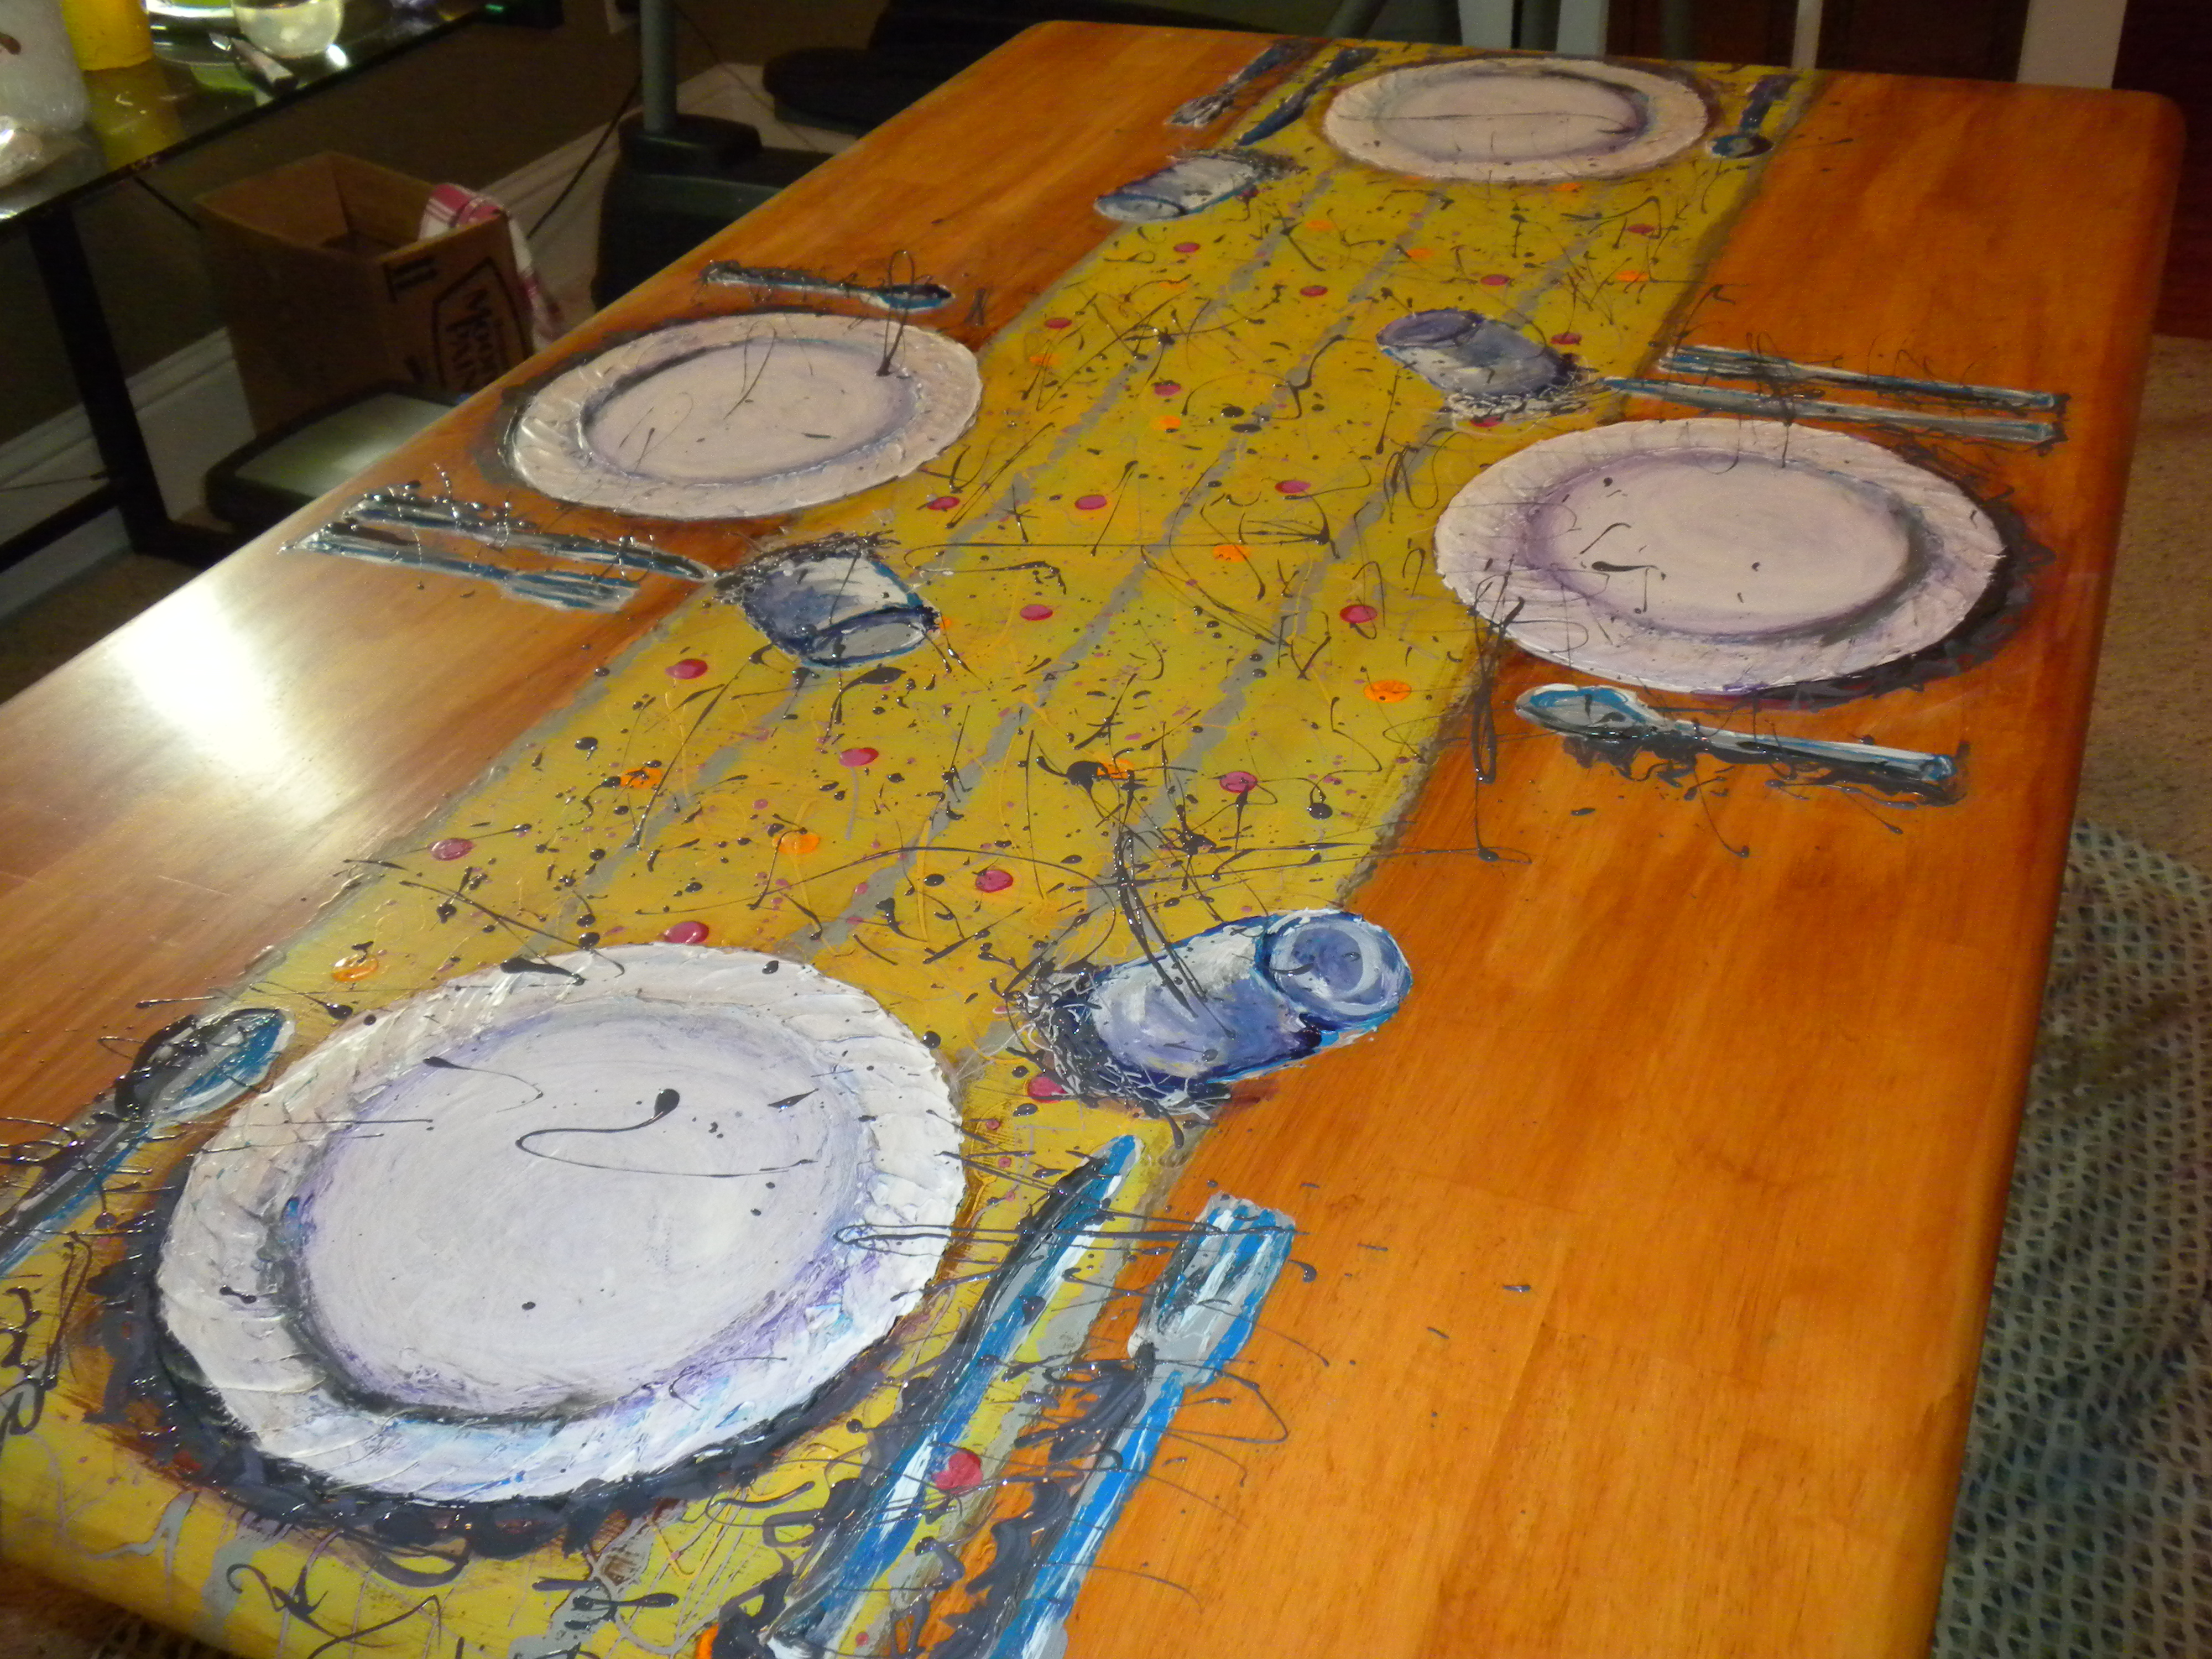 Final table top painting holly herick creative adventures for Creative table tops